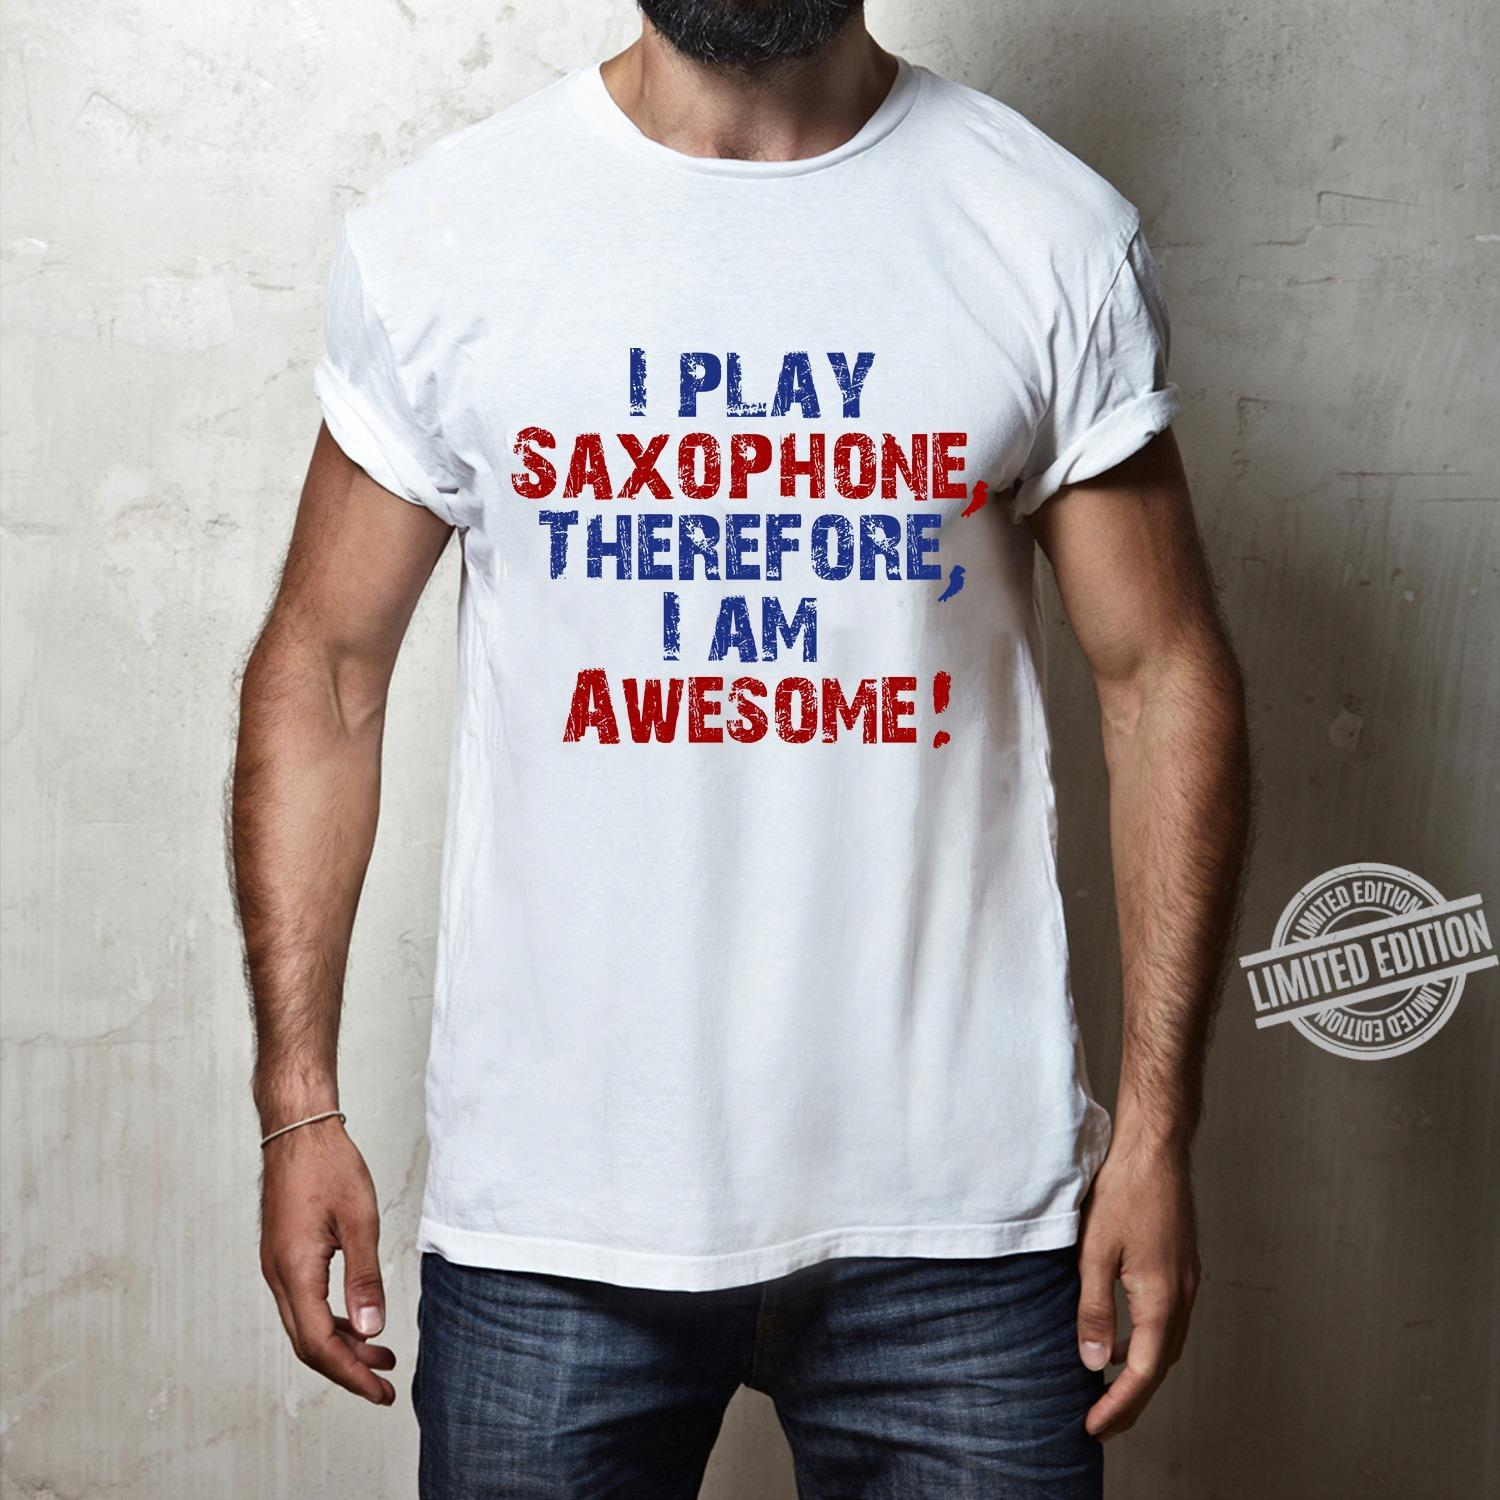 I Play Saxophone Therefore I Am Awesome Shirt